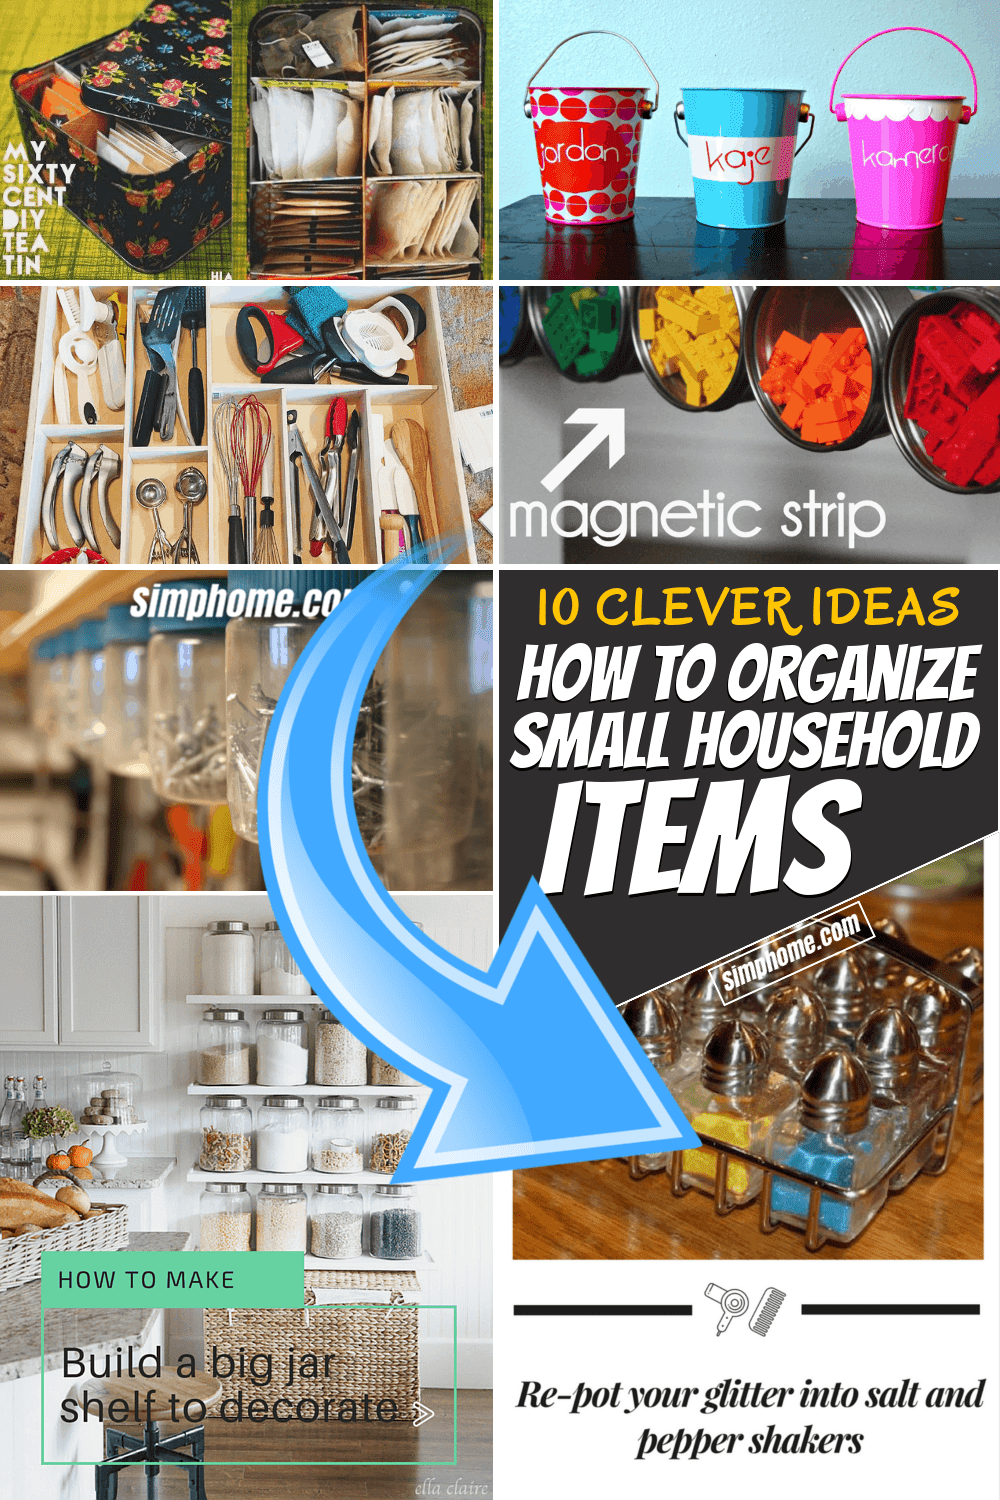 33 Clever Ideas How to Organize Small Household Items